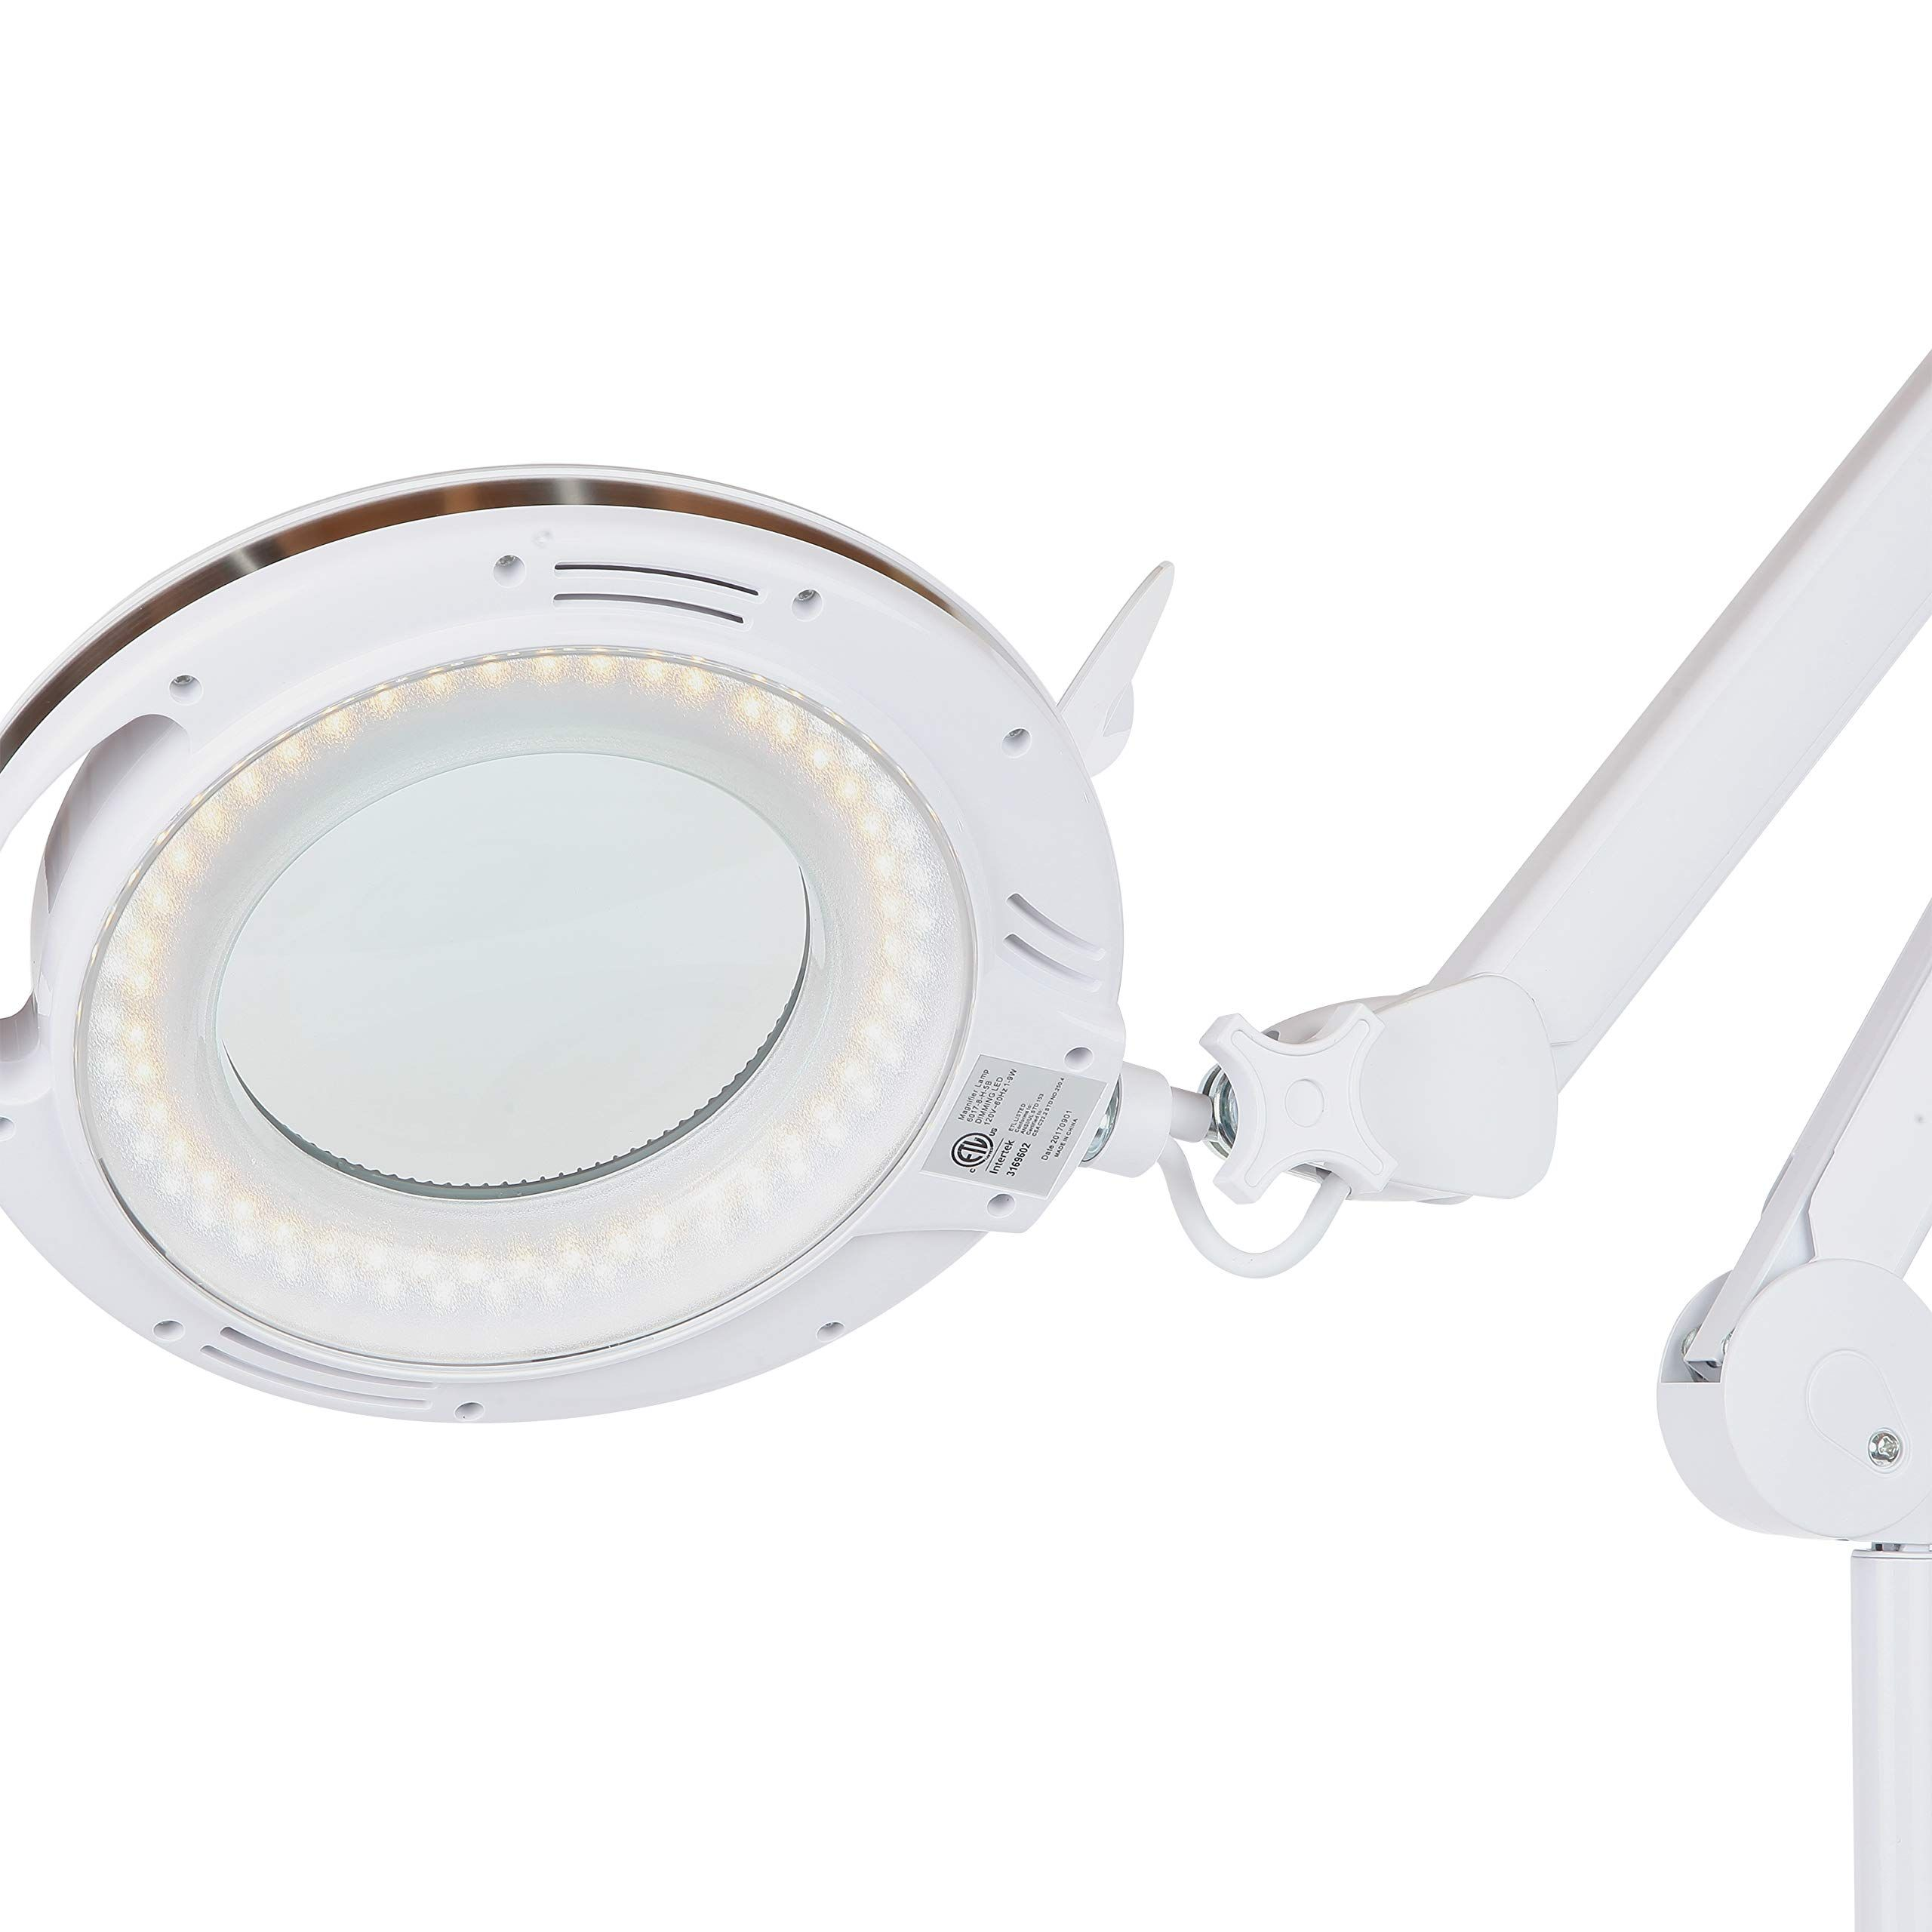 Brightech Lightview Pro Led Magnifying Glass Floor Lamp 6 Wheel Rolling Base Reading Magnifier Light With Gooseneck For Professional Tasks Floor Lamp Puzzle Lights Magnifying Glass